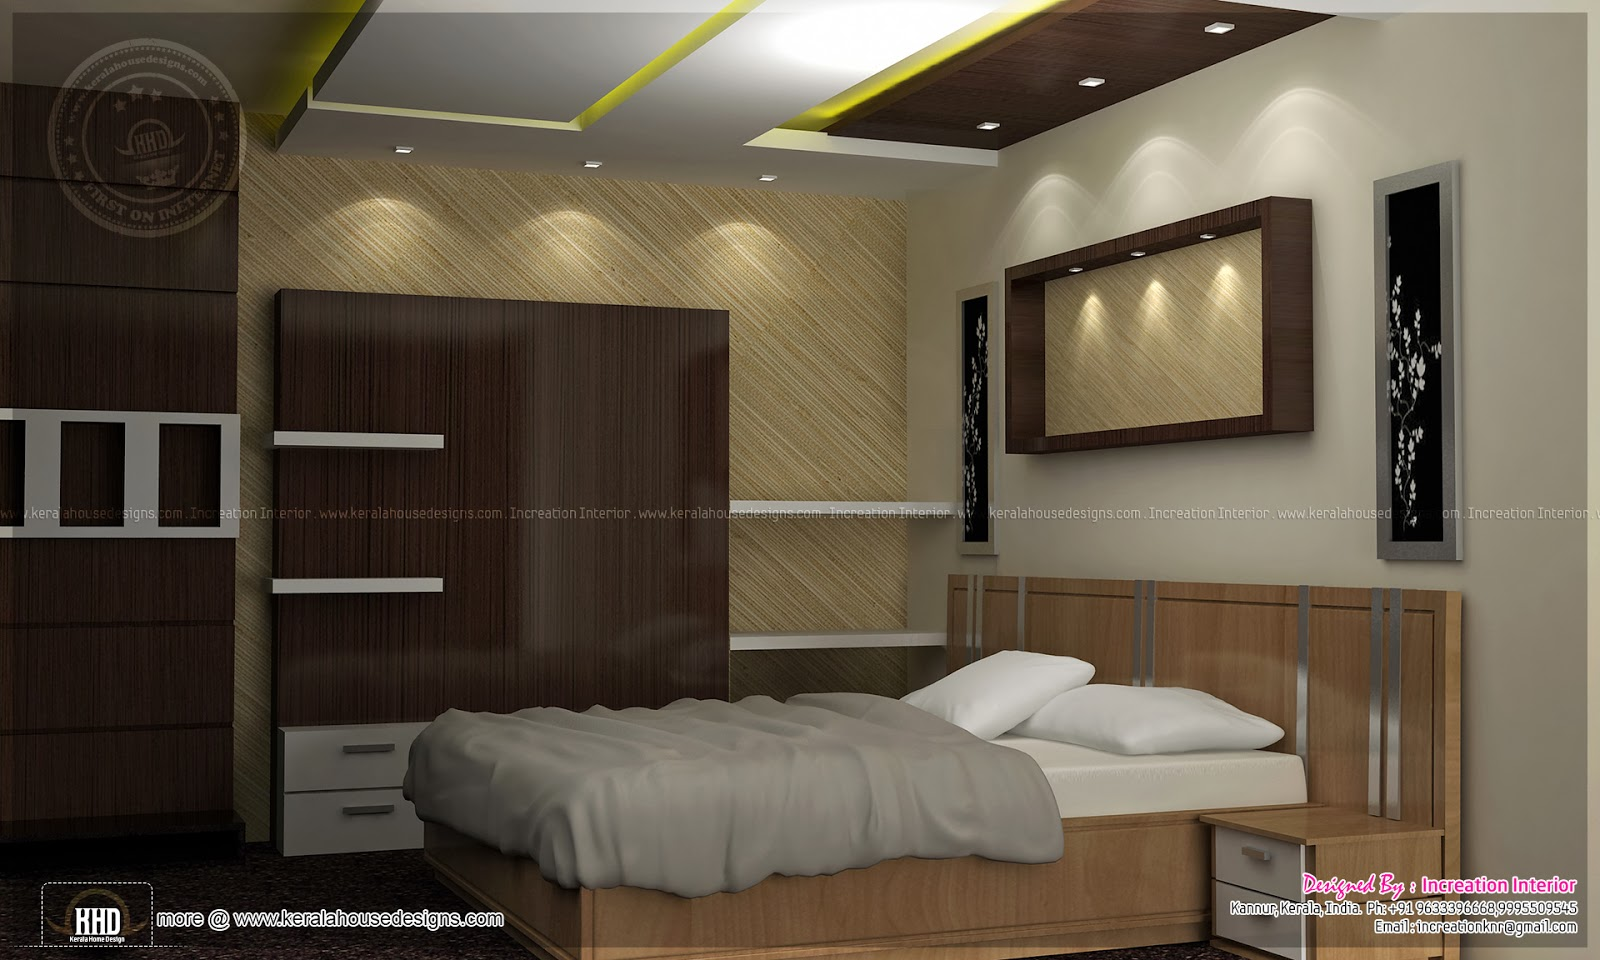 Bedroom interior designs home kerala plans for Rooms interior design hamilton nz